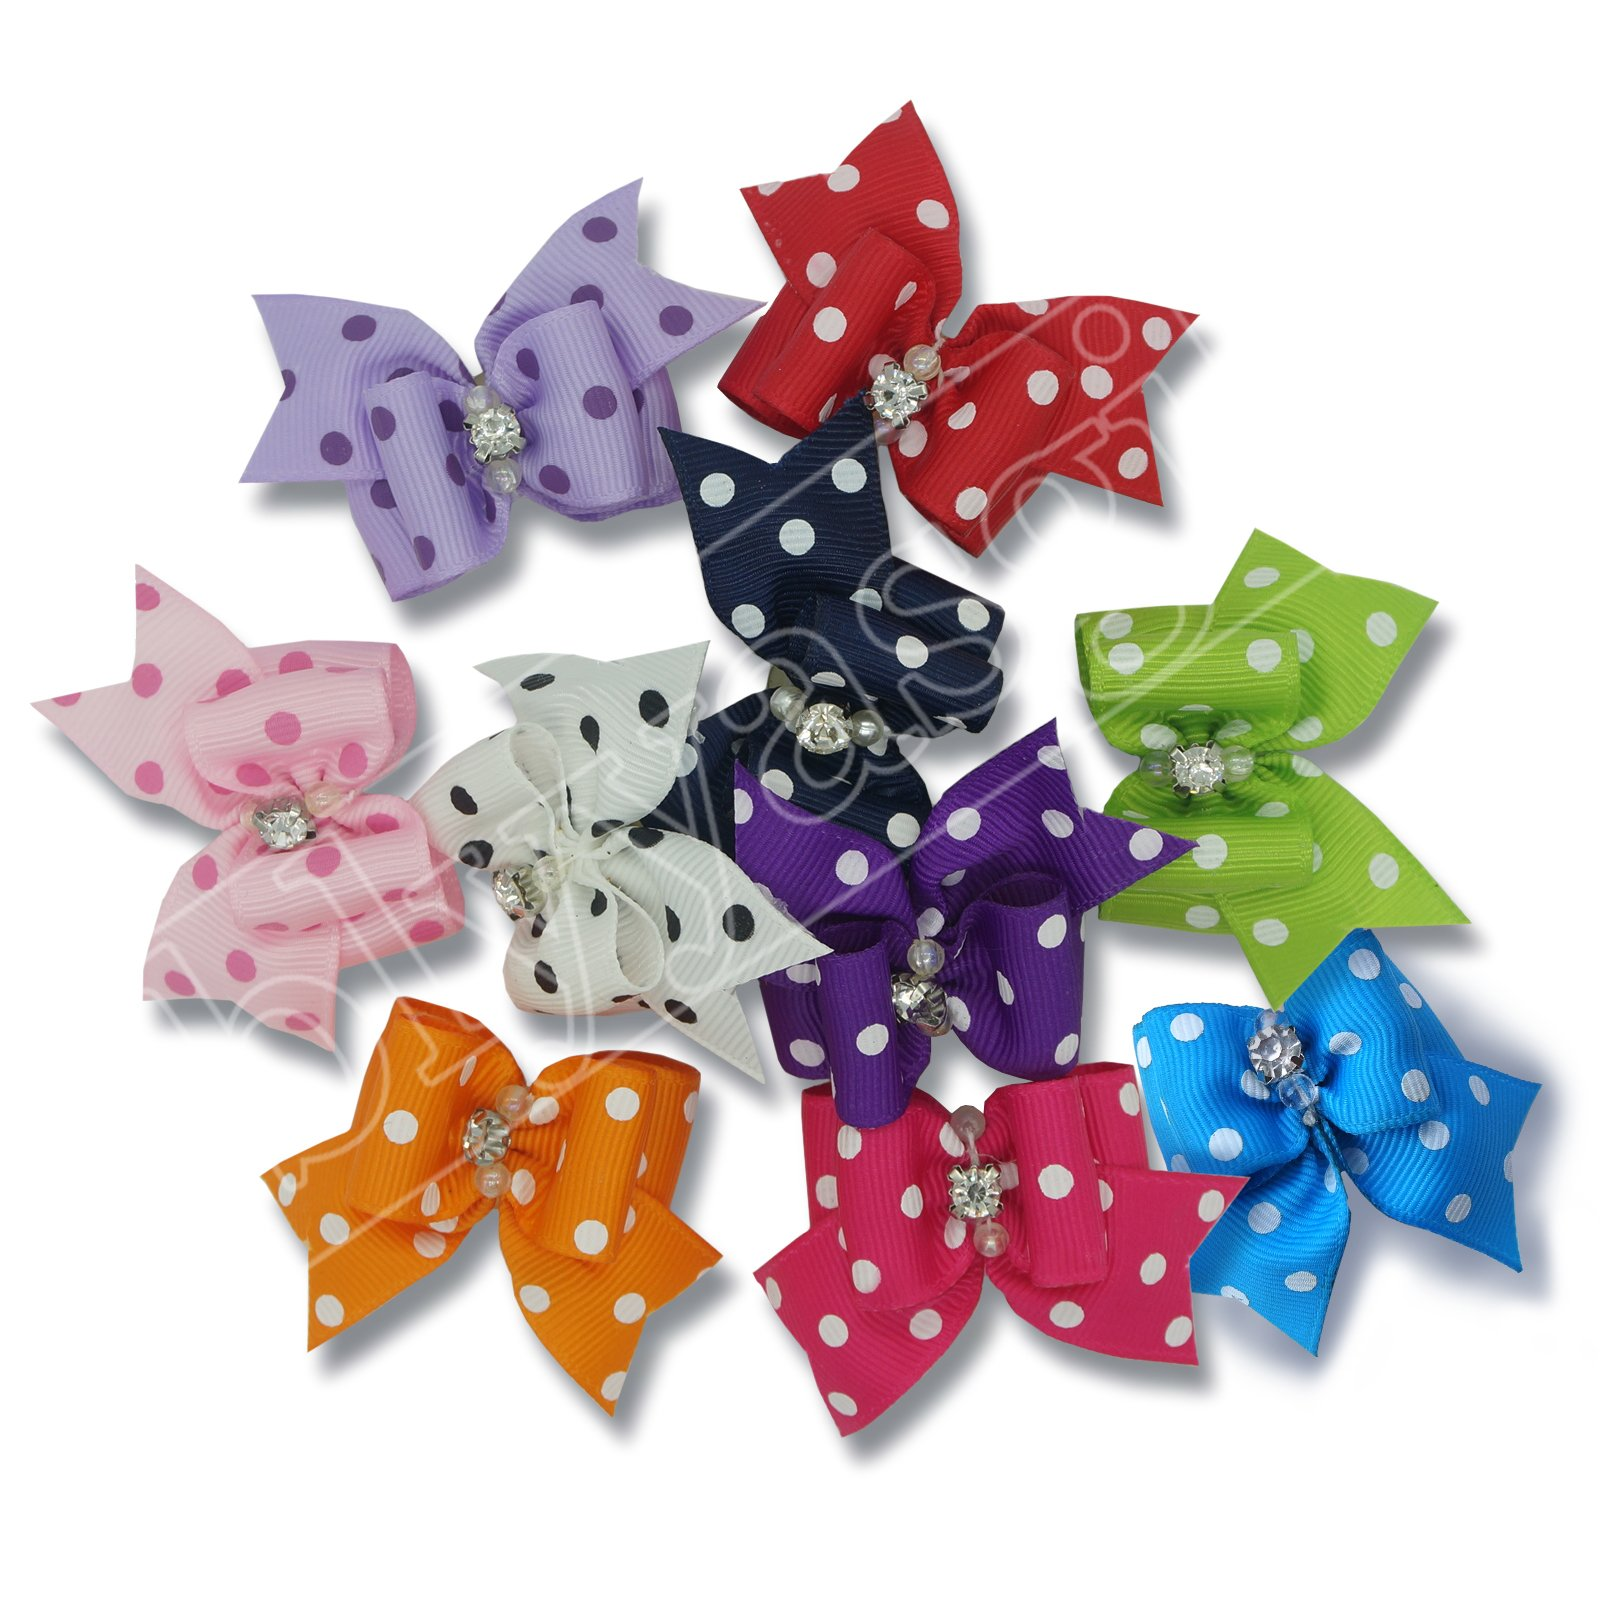 blyyasgi® Wholesale Lots Rubber Band Hair Bow Headdress Flower for Puppy Dog Pets Gift (100 pieces)